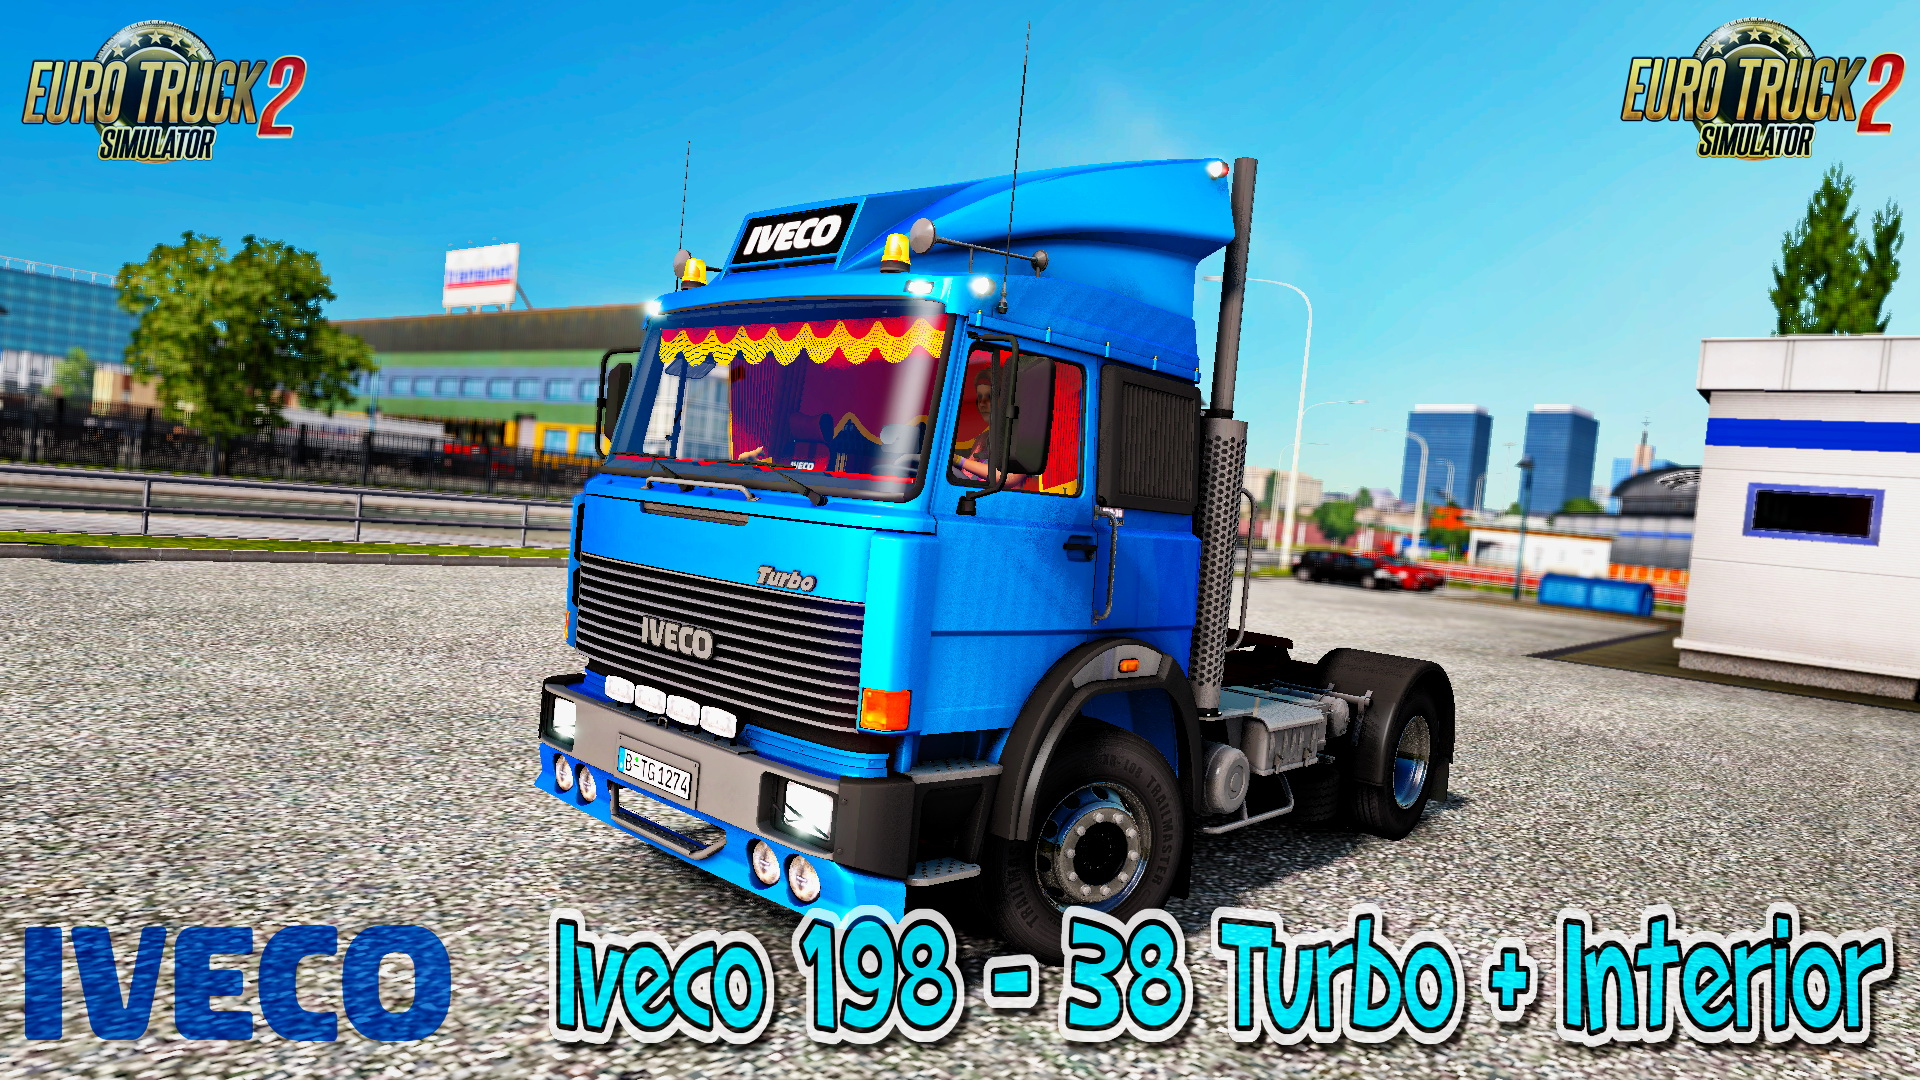 Iveco 198 - 38 Turbo + Interior - Euro Truck Simulator 2